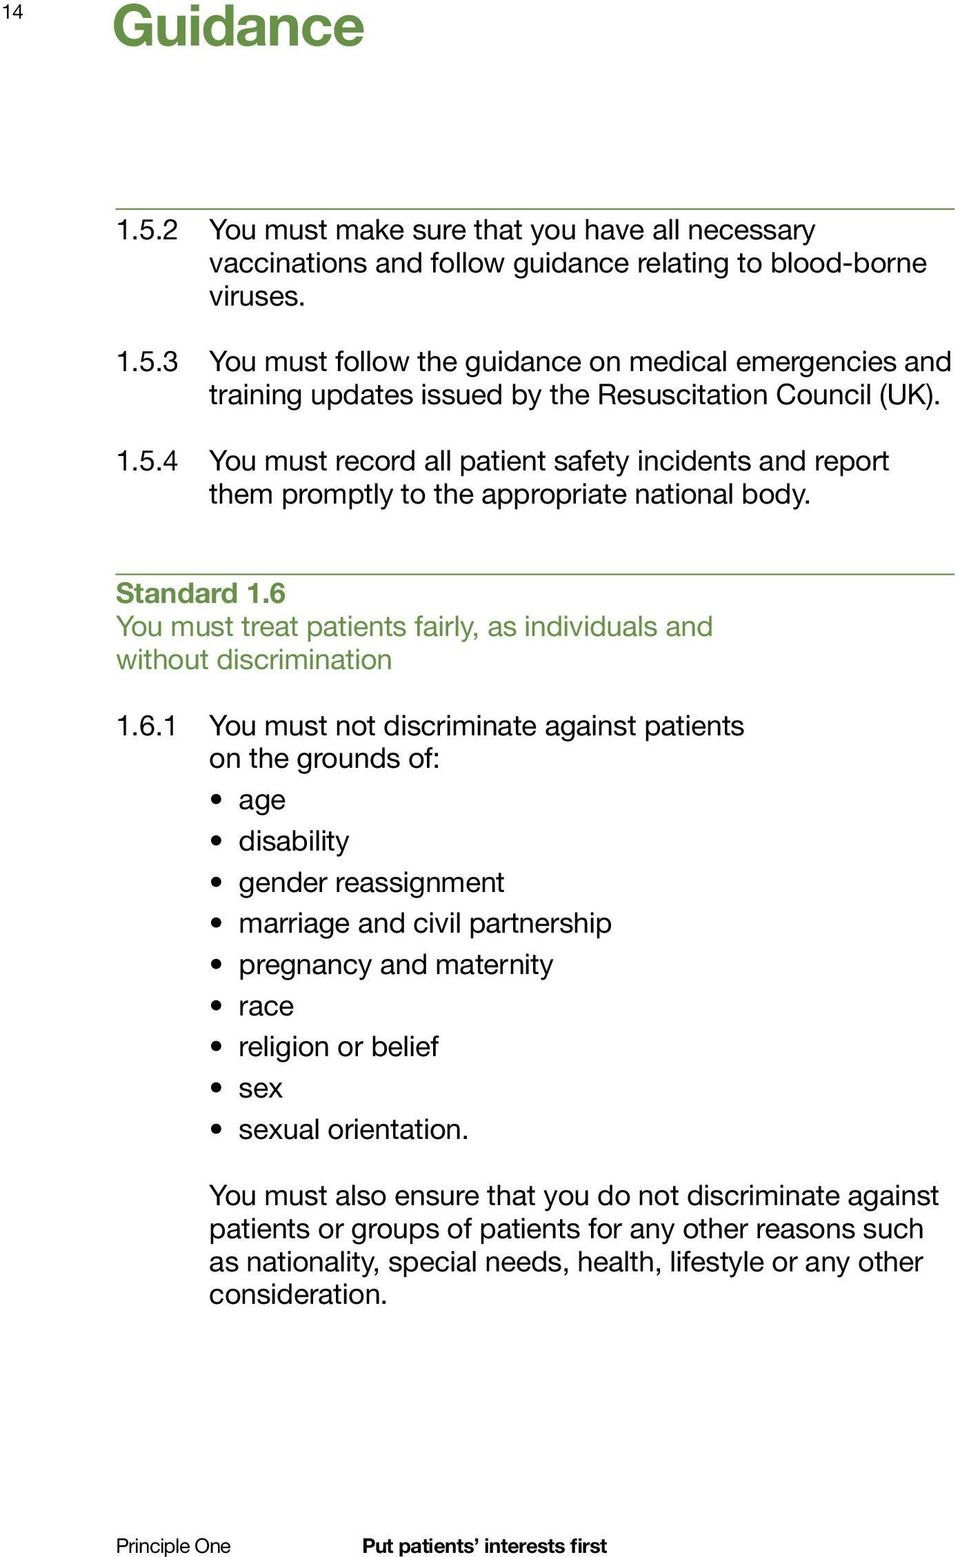 6.1 You must not discriminate against patients on the grounds of: age disability gender reassignment marriage and civil partnership pregnancy and maternity race religion or belief sex sexual